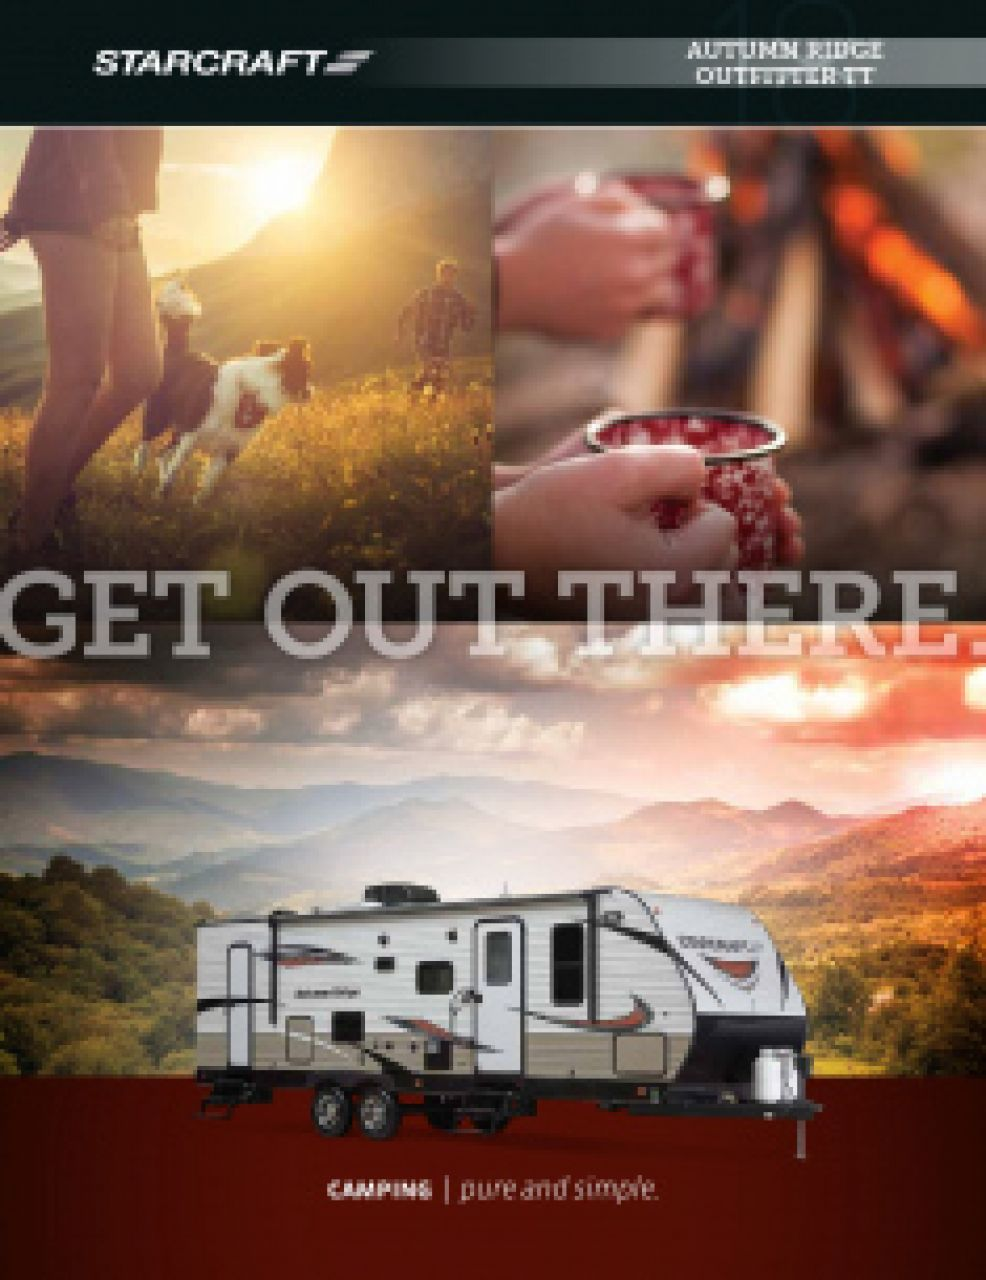 2019 Starcraft Autumn Ridge Outfitter RV Brochure Cover